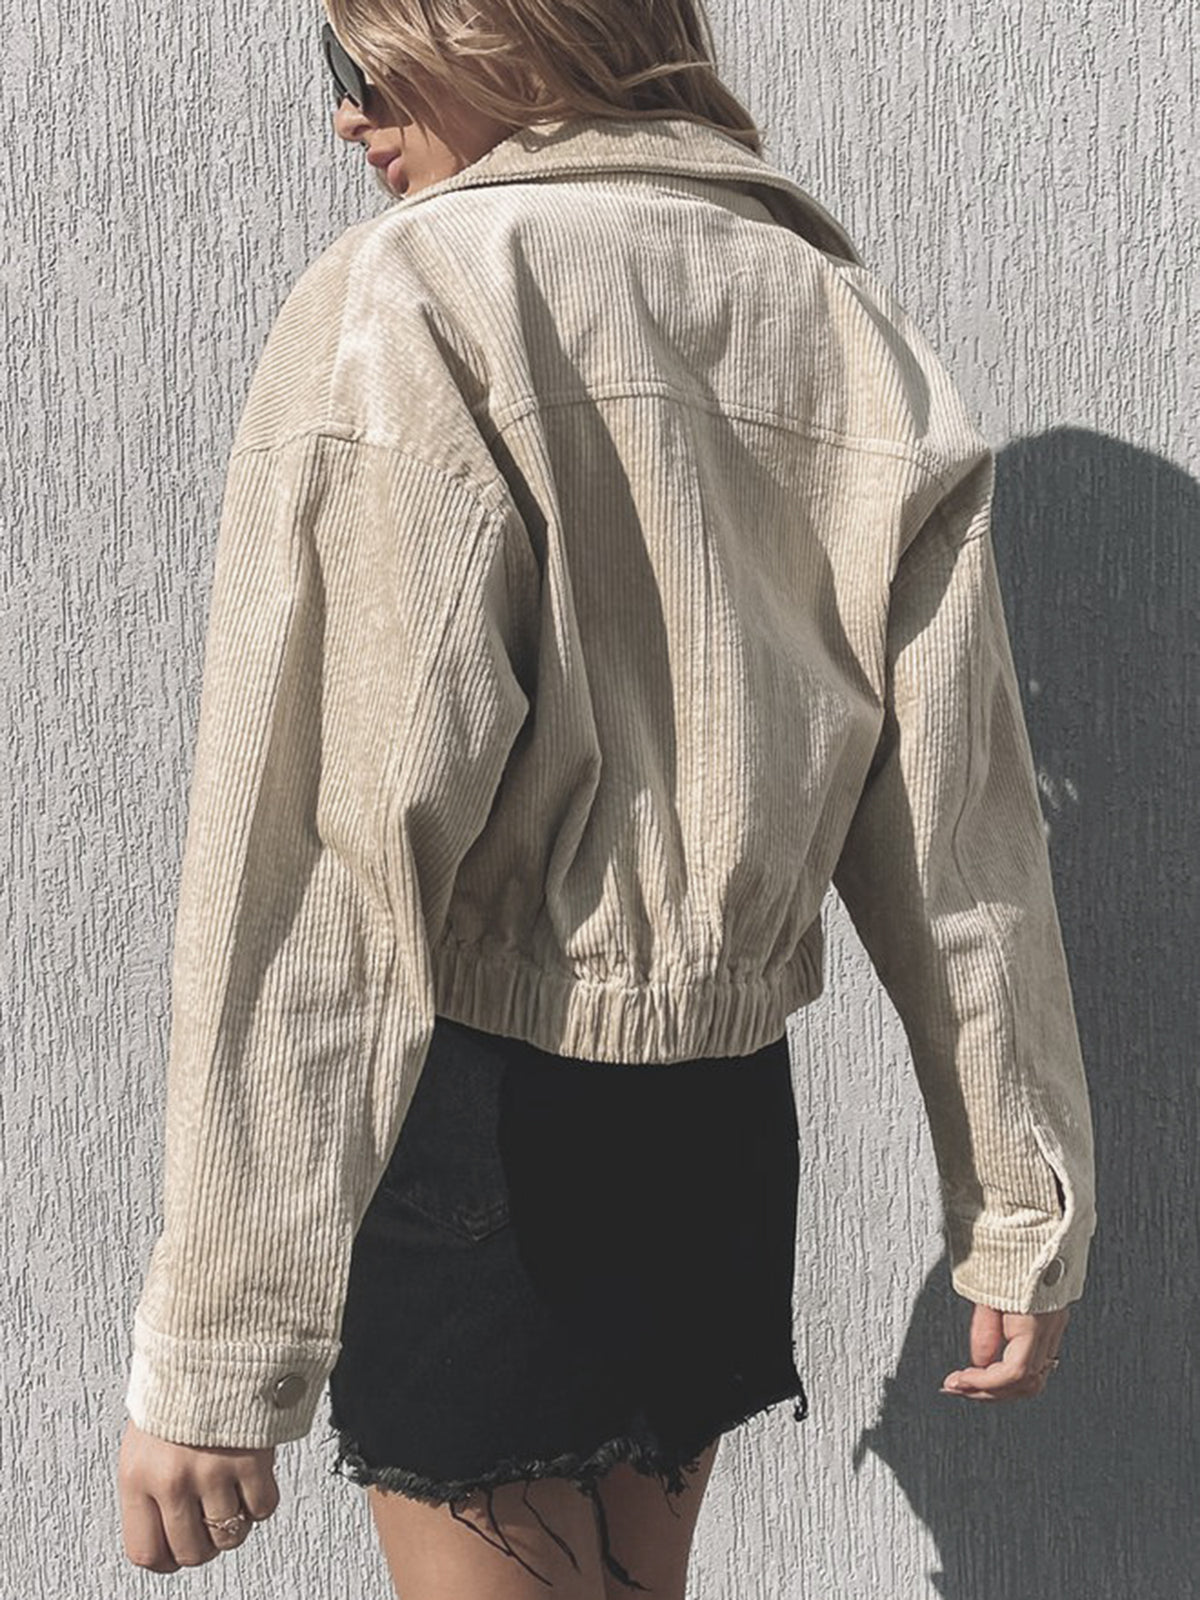 Cute Cord Short Jacket-Beige